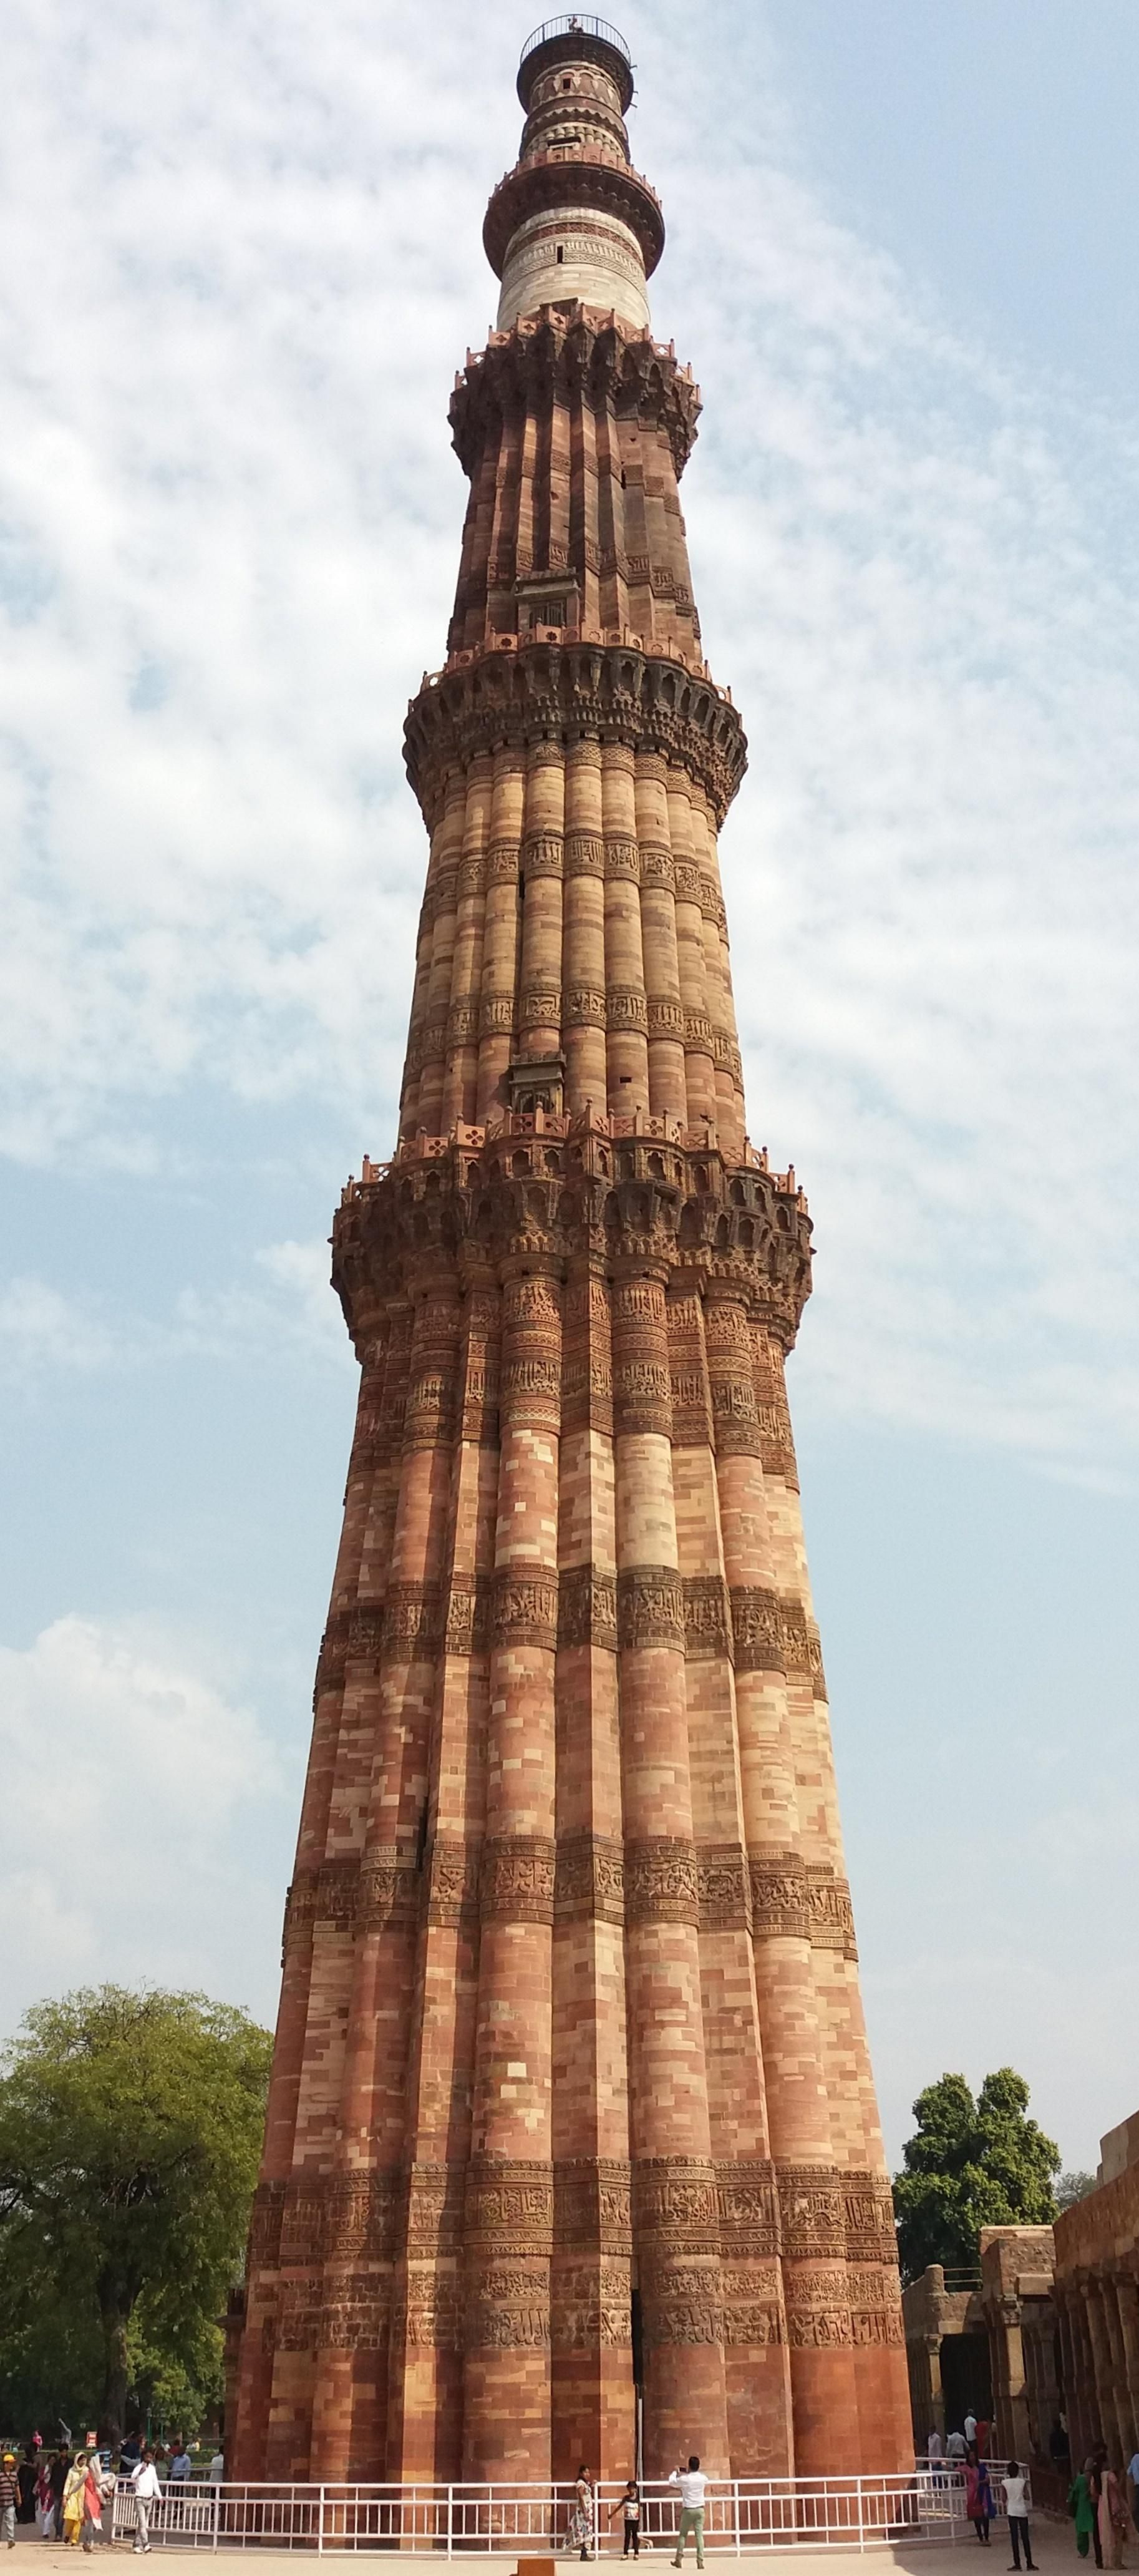 ITAP of Qutub Minar a famous heritage in New Delhi India